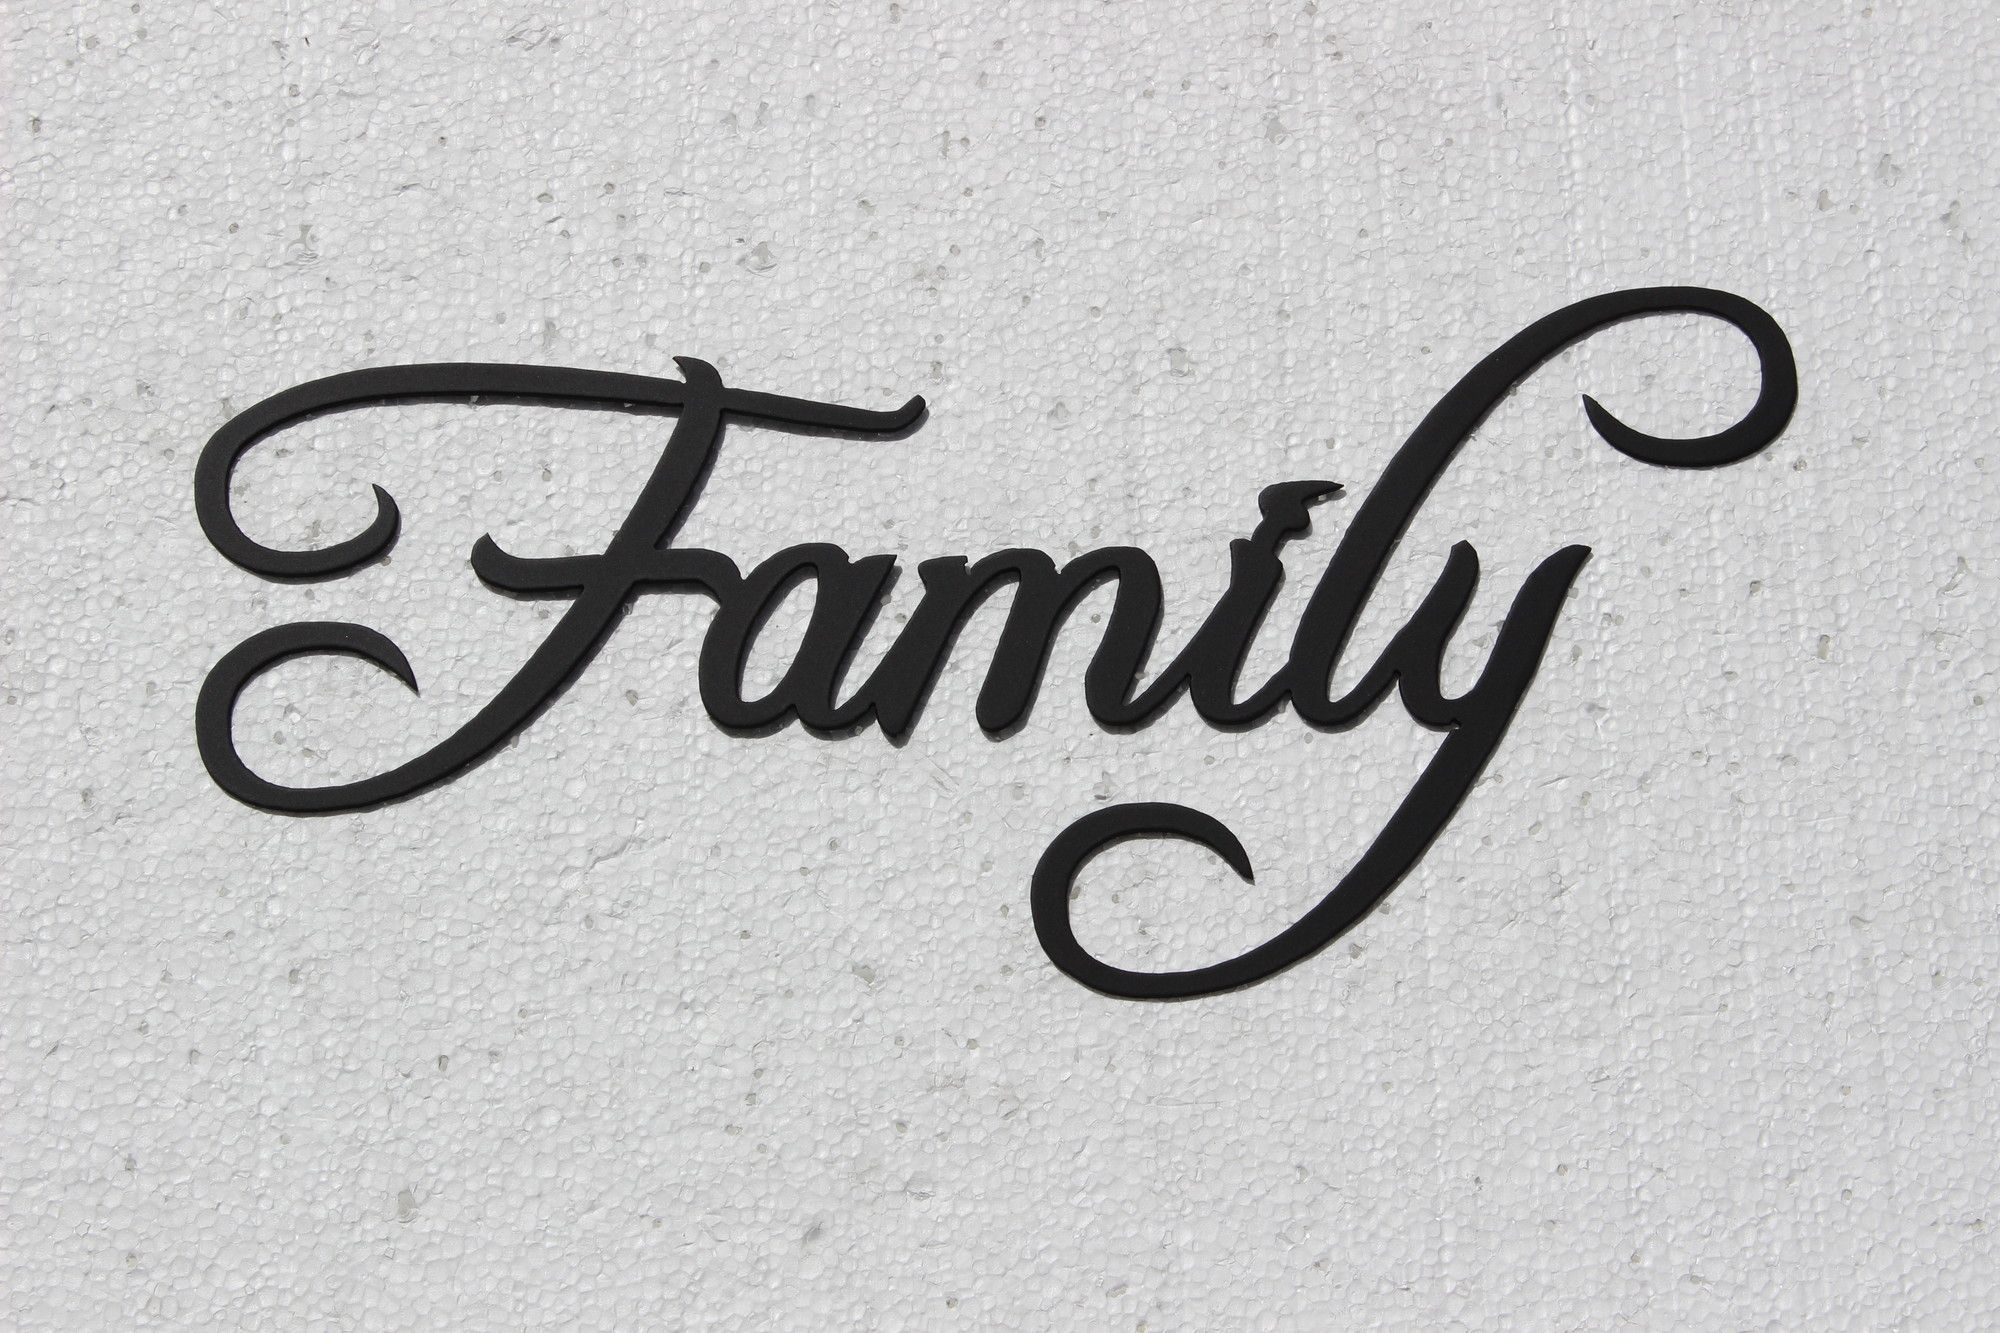 Family Word Sign Fancy Script Wall Décor | Hand Writing Inside Choose Happiness 3D Cursive Metal Wall Decor (View 5 of 30)